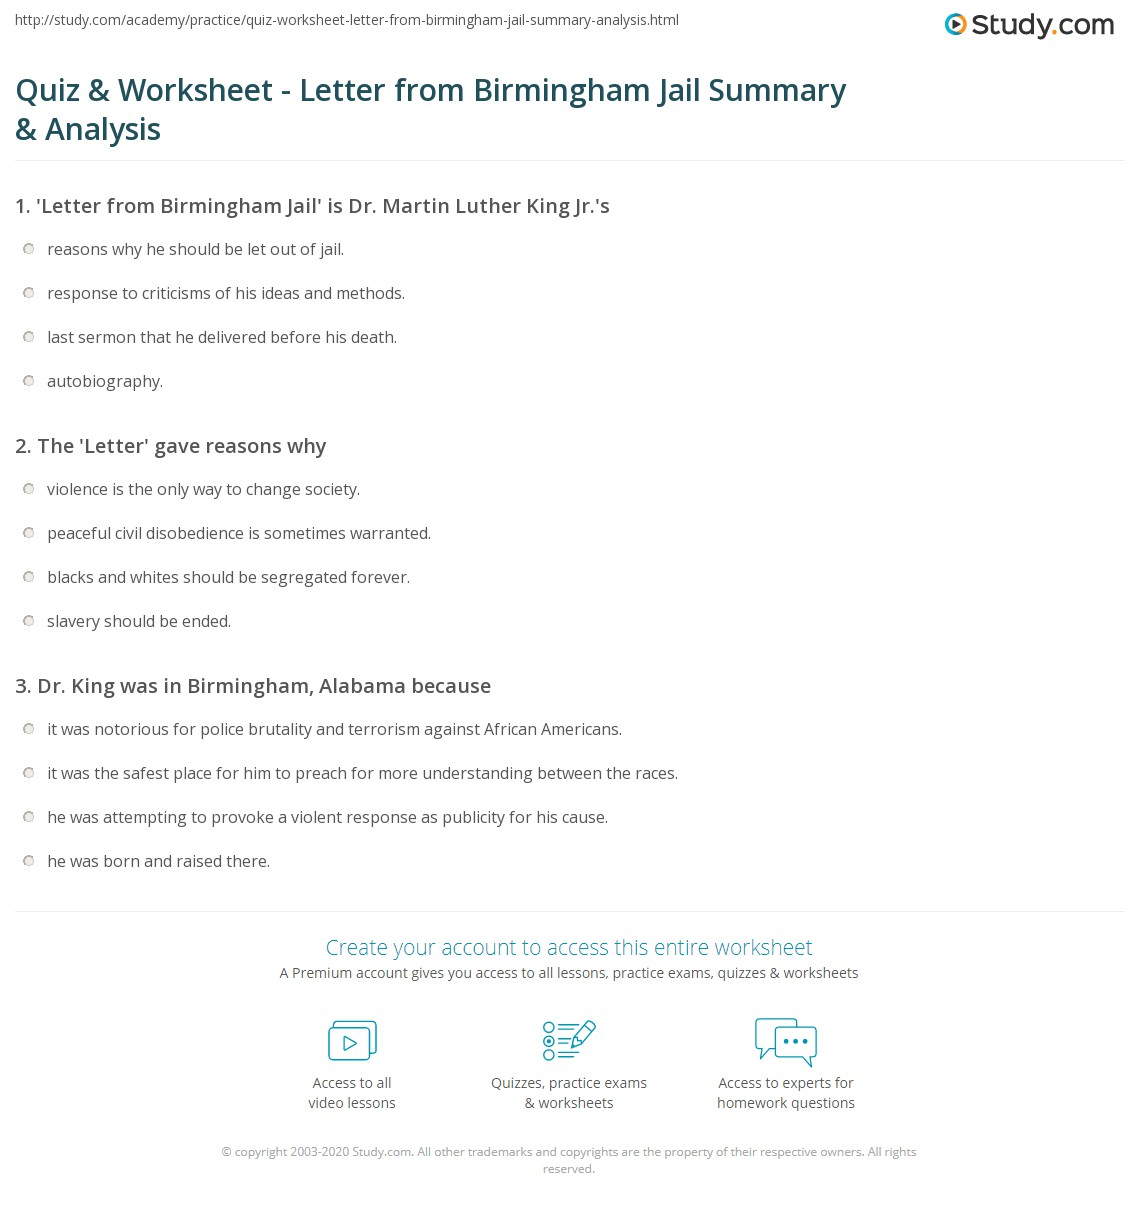 print letter from birmingham jail summary analysis worksheet